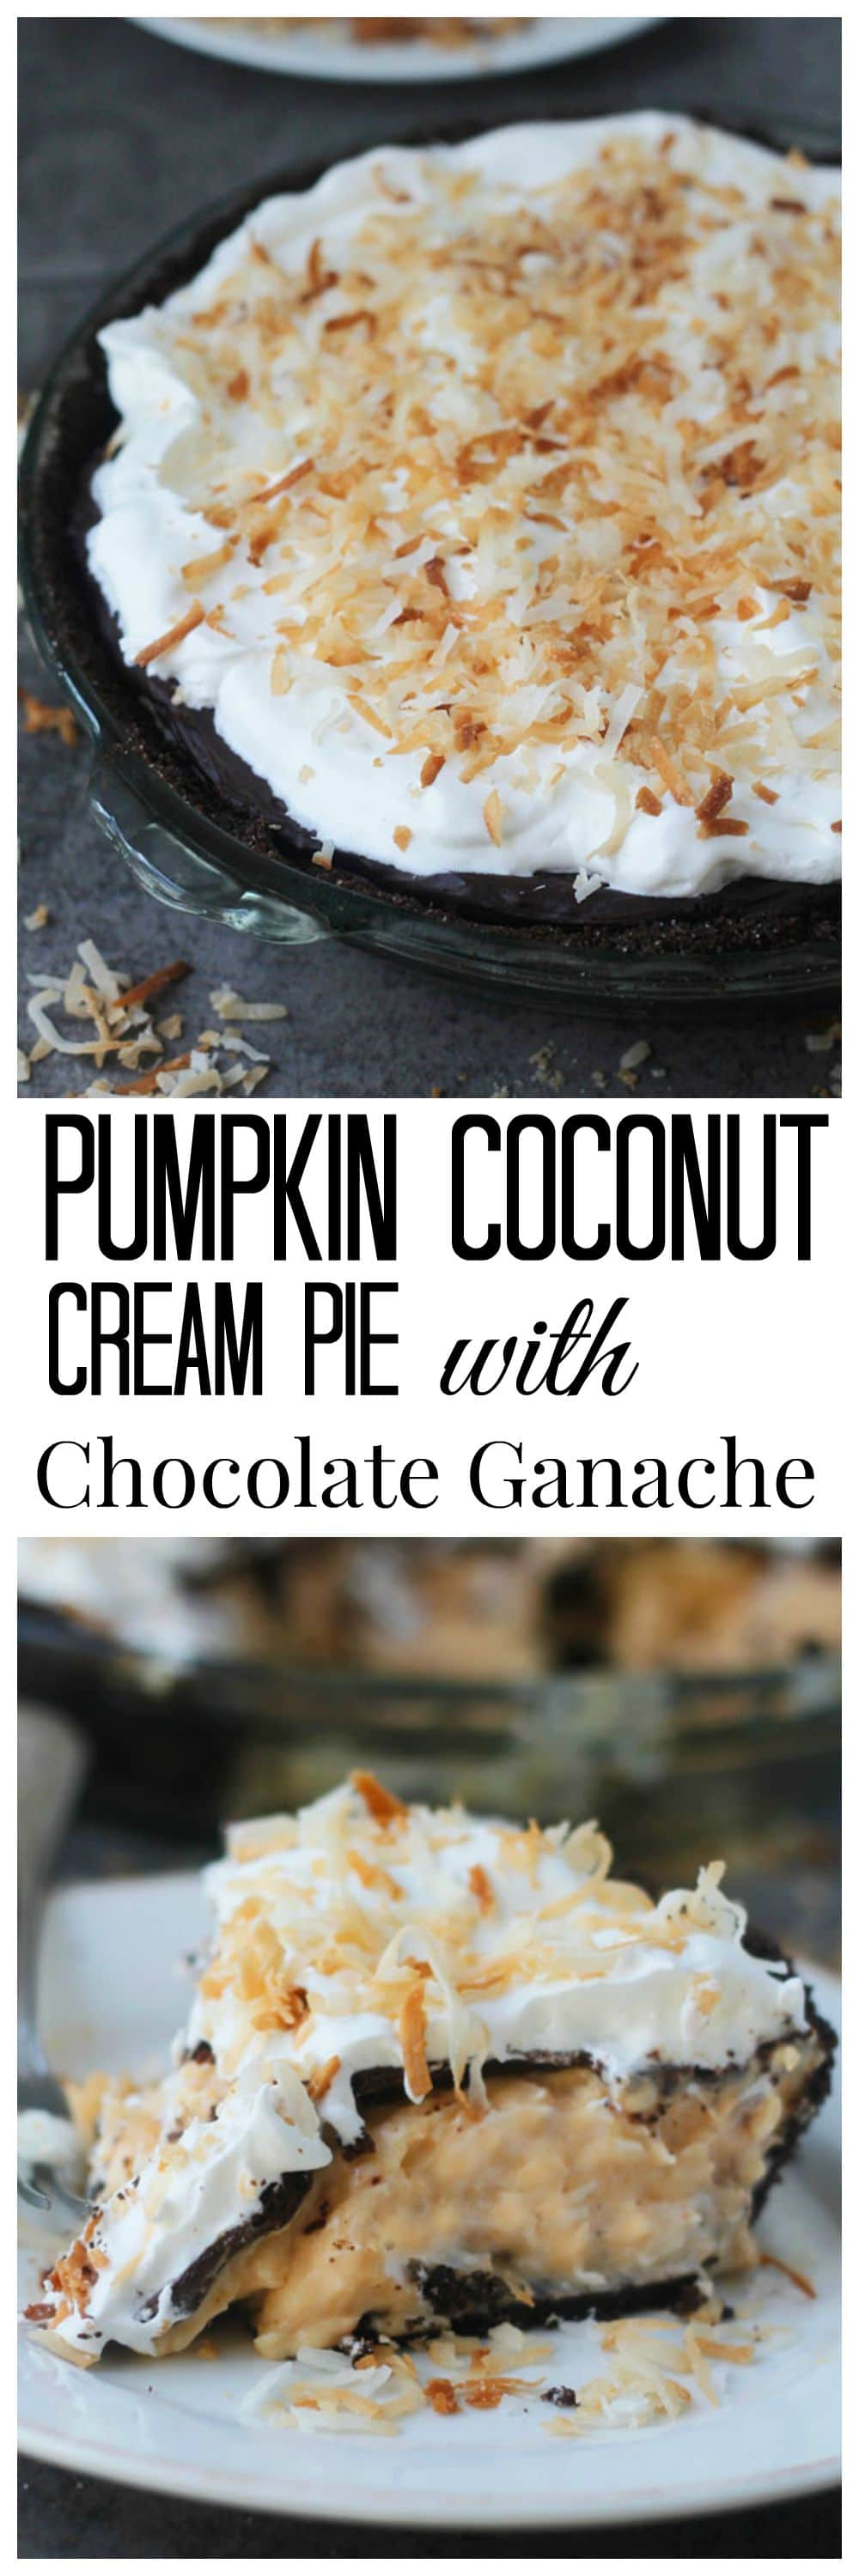 Pumpkin Coconut Cream Pie with Chocolate Ganache